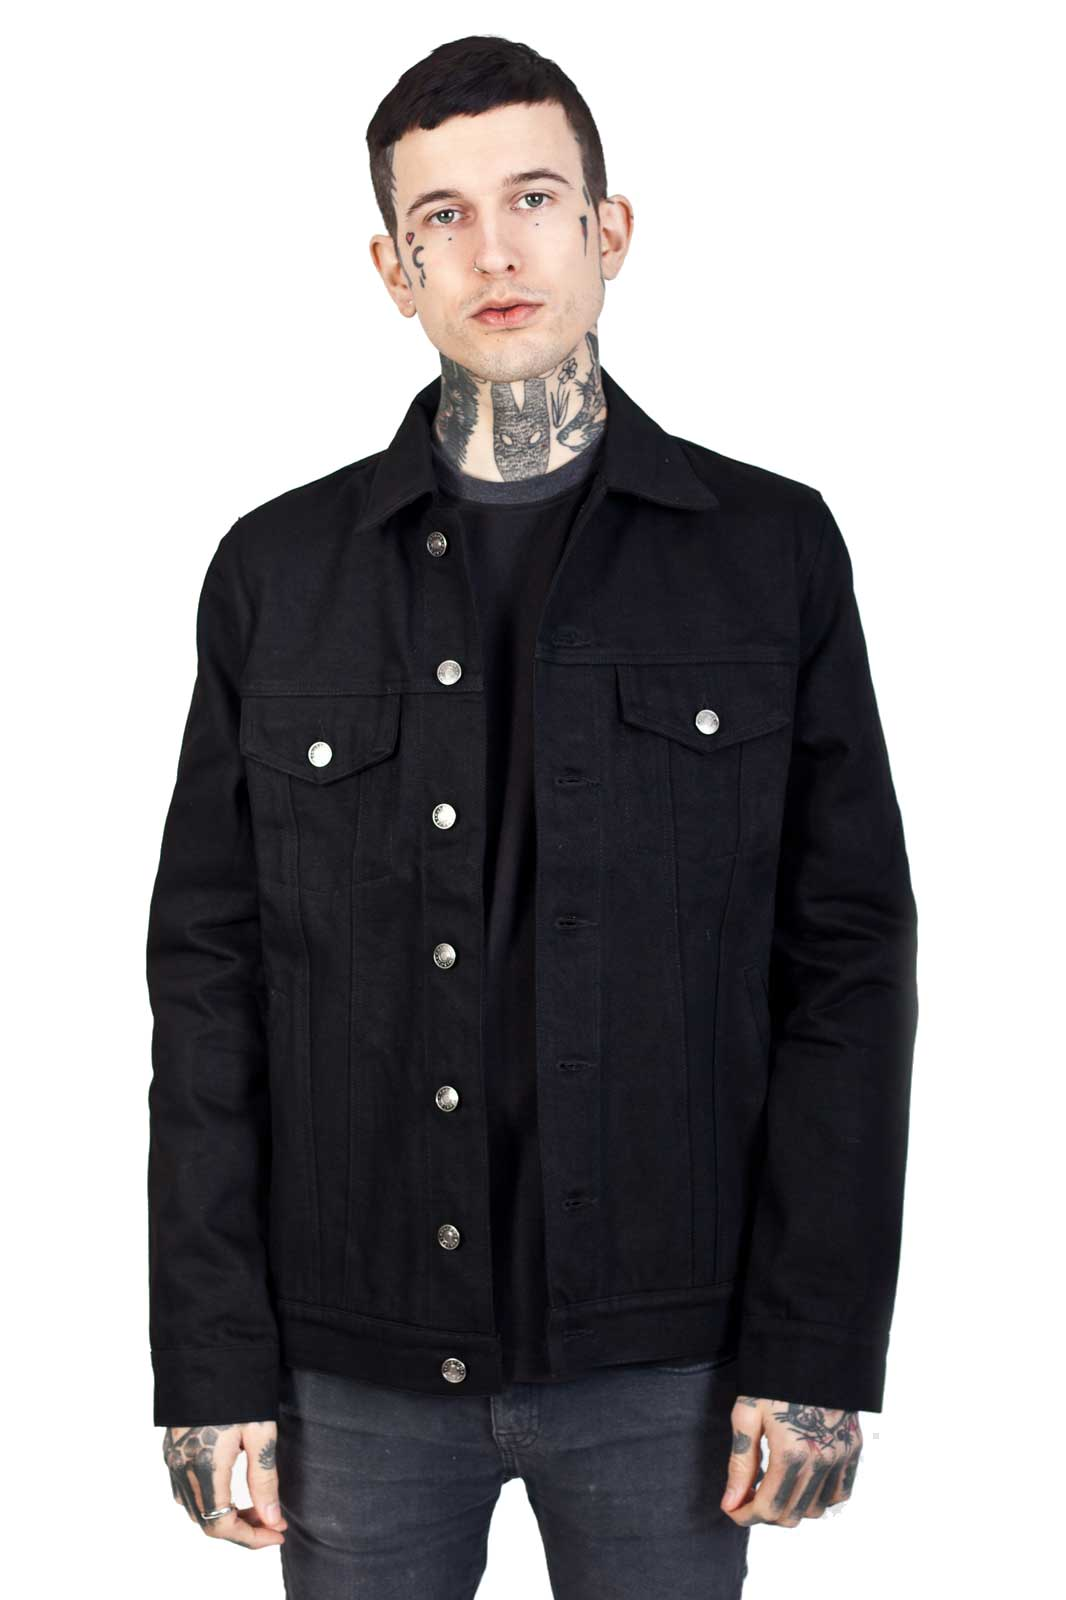 Kustom Creeps Denim Jacket front